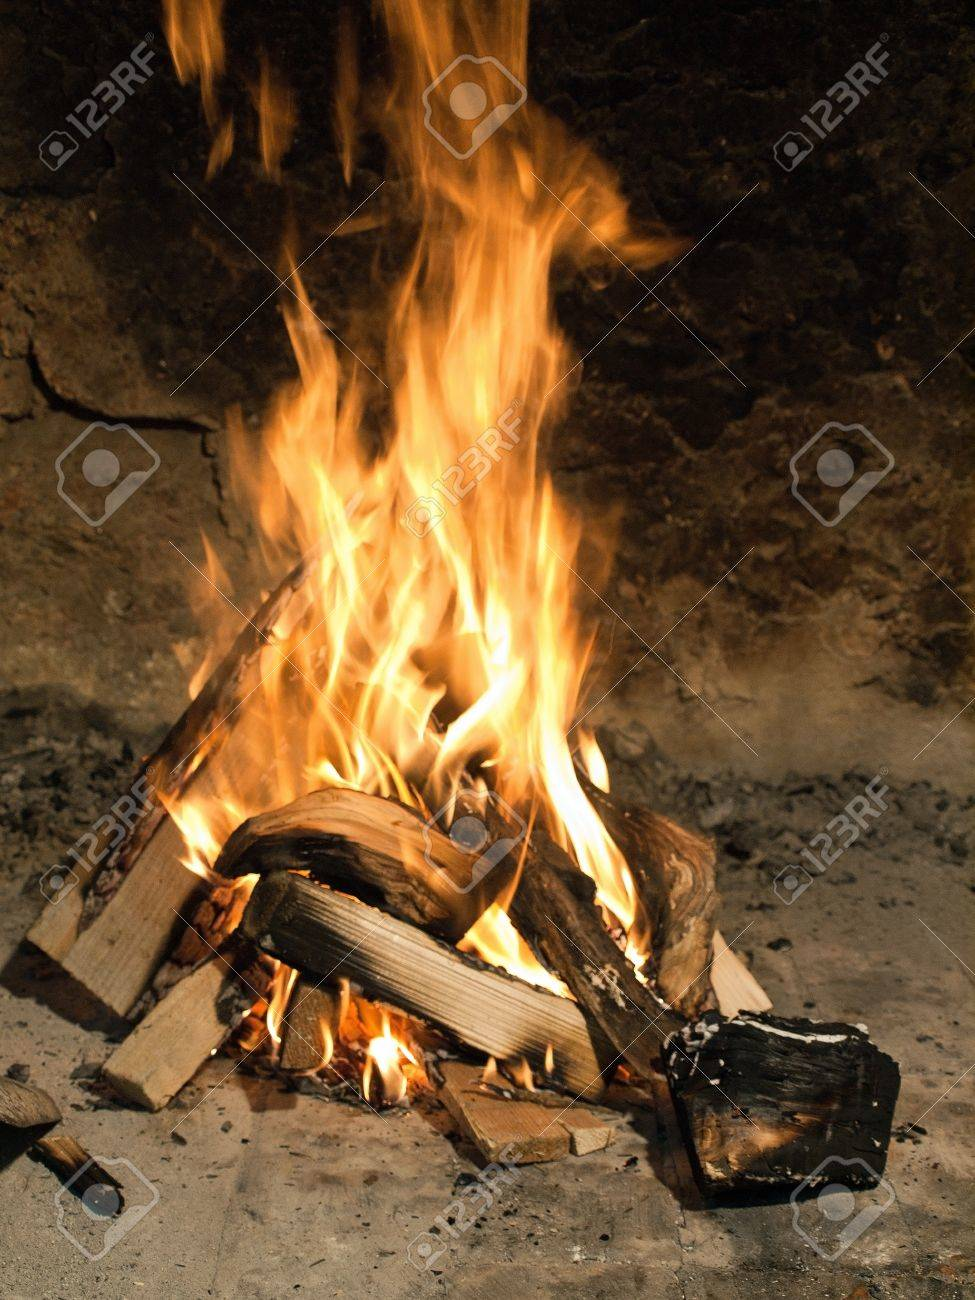 Fire burning in a fireplace Stock Photo - 13164707